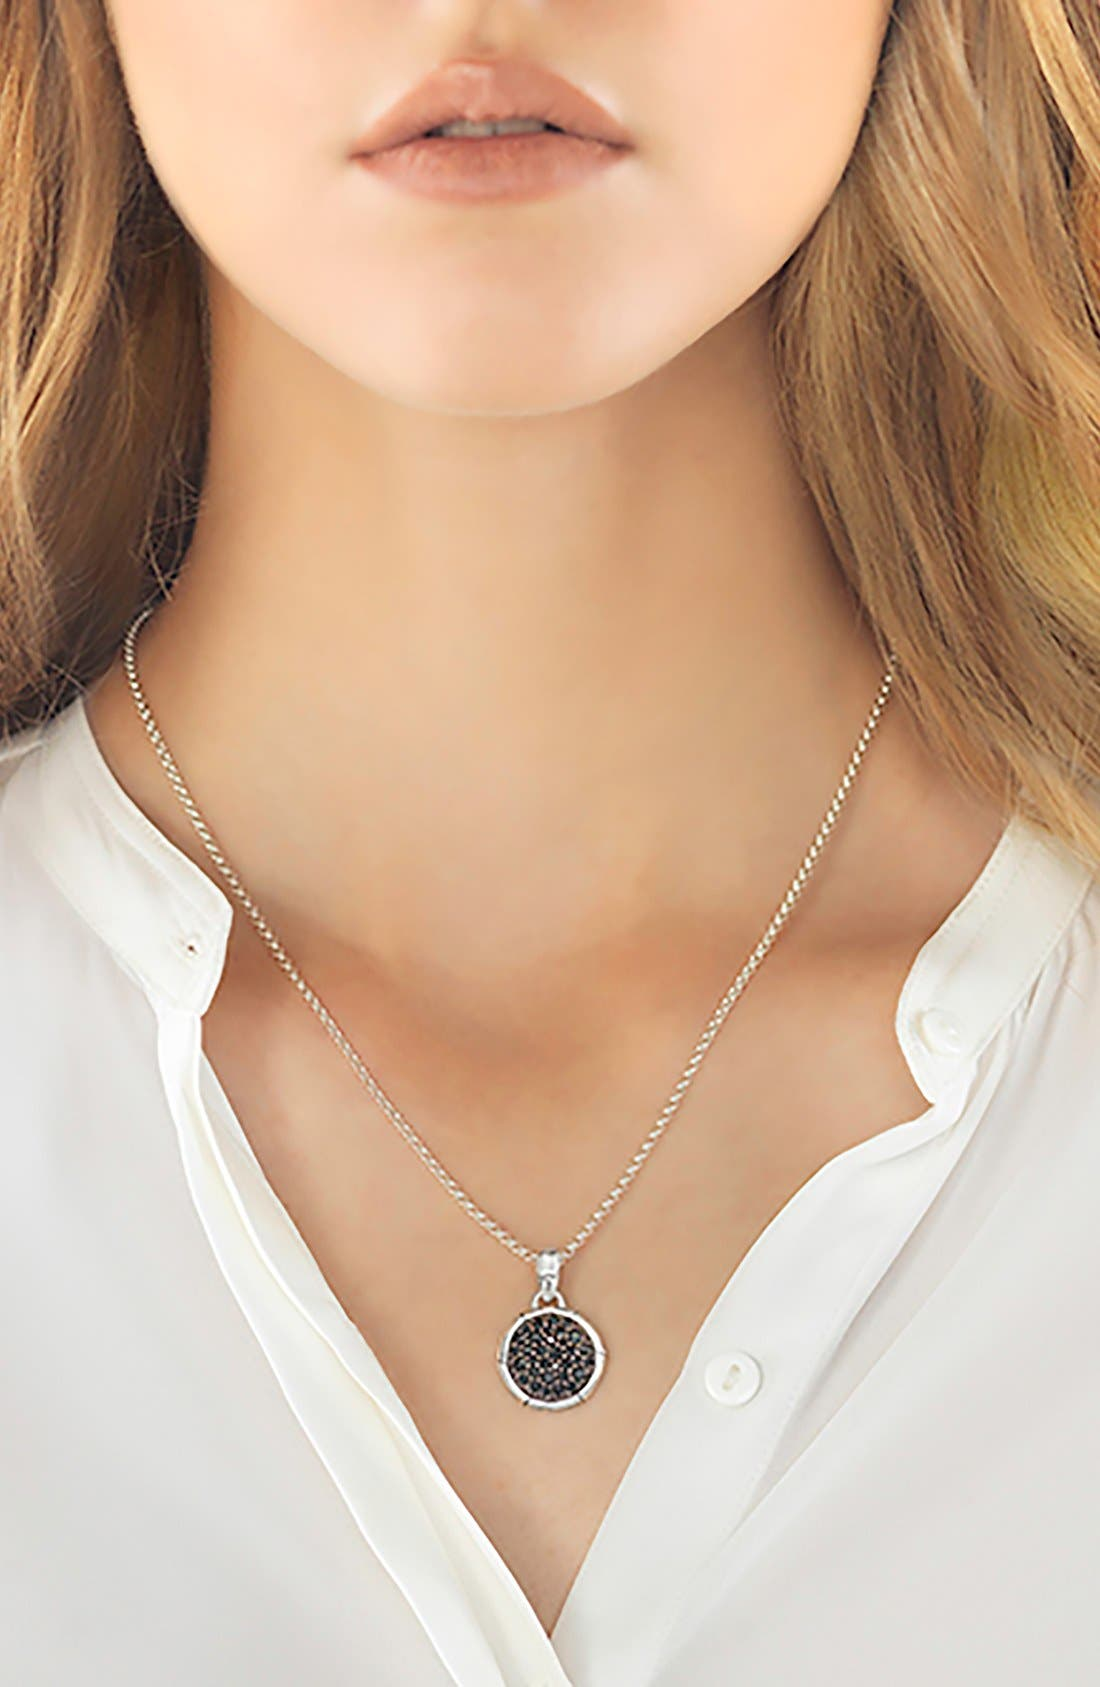 'Bamboo' Small Round Pendant Necklace,                             Alternate thumbnail 2, color,                             BLACK SAPPHIRE